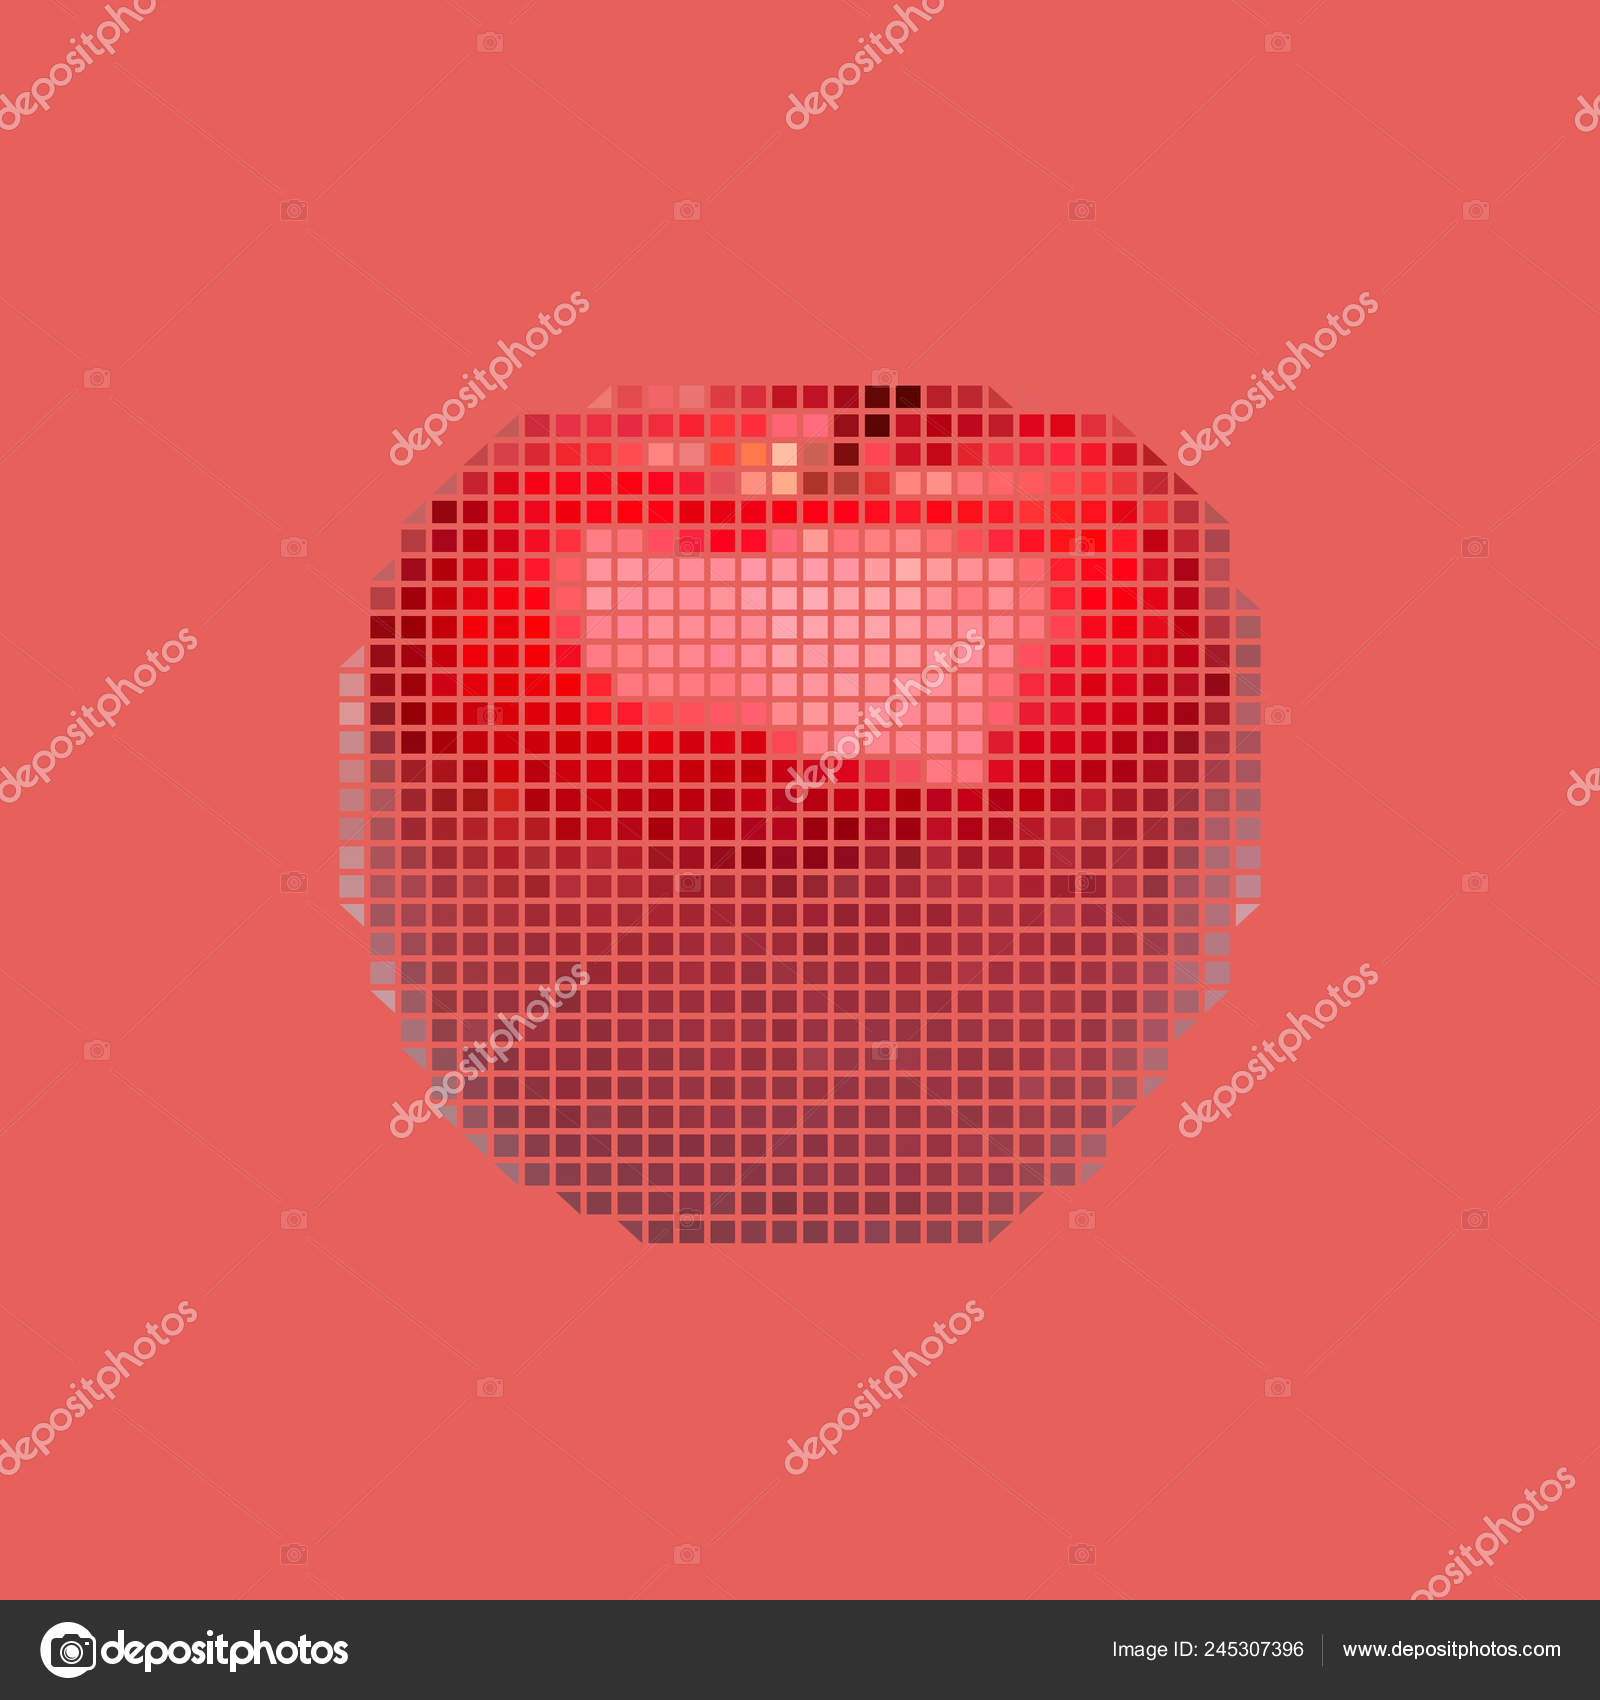 Vector Red Apple Low Poly Triangular Style Pixel Art Stock